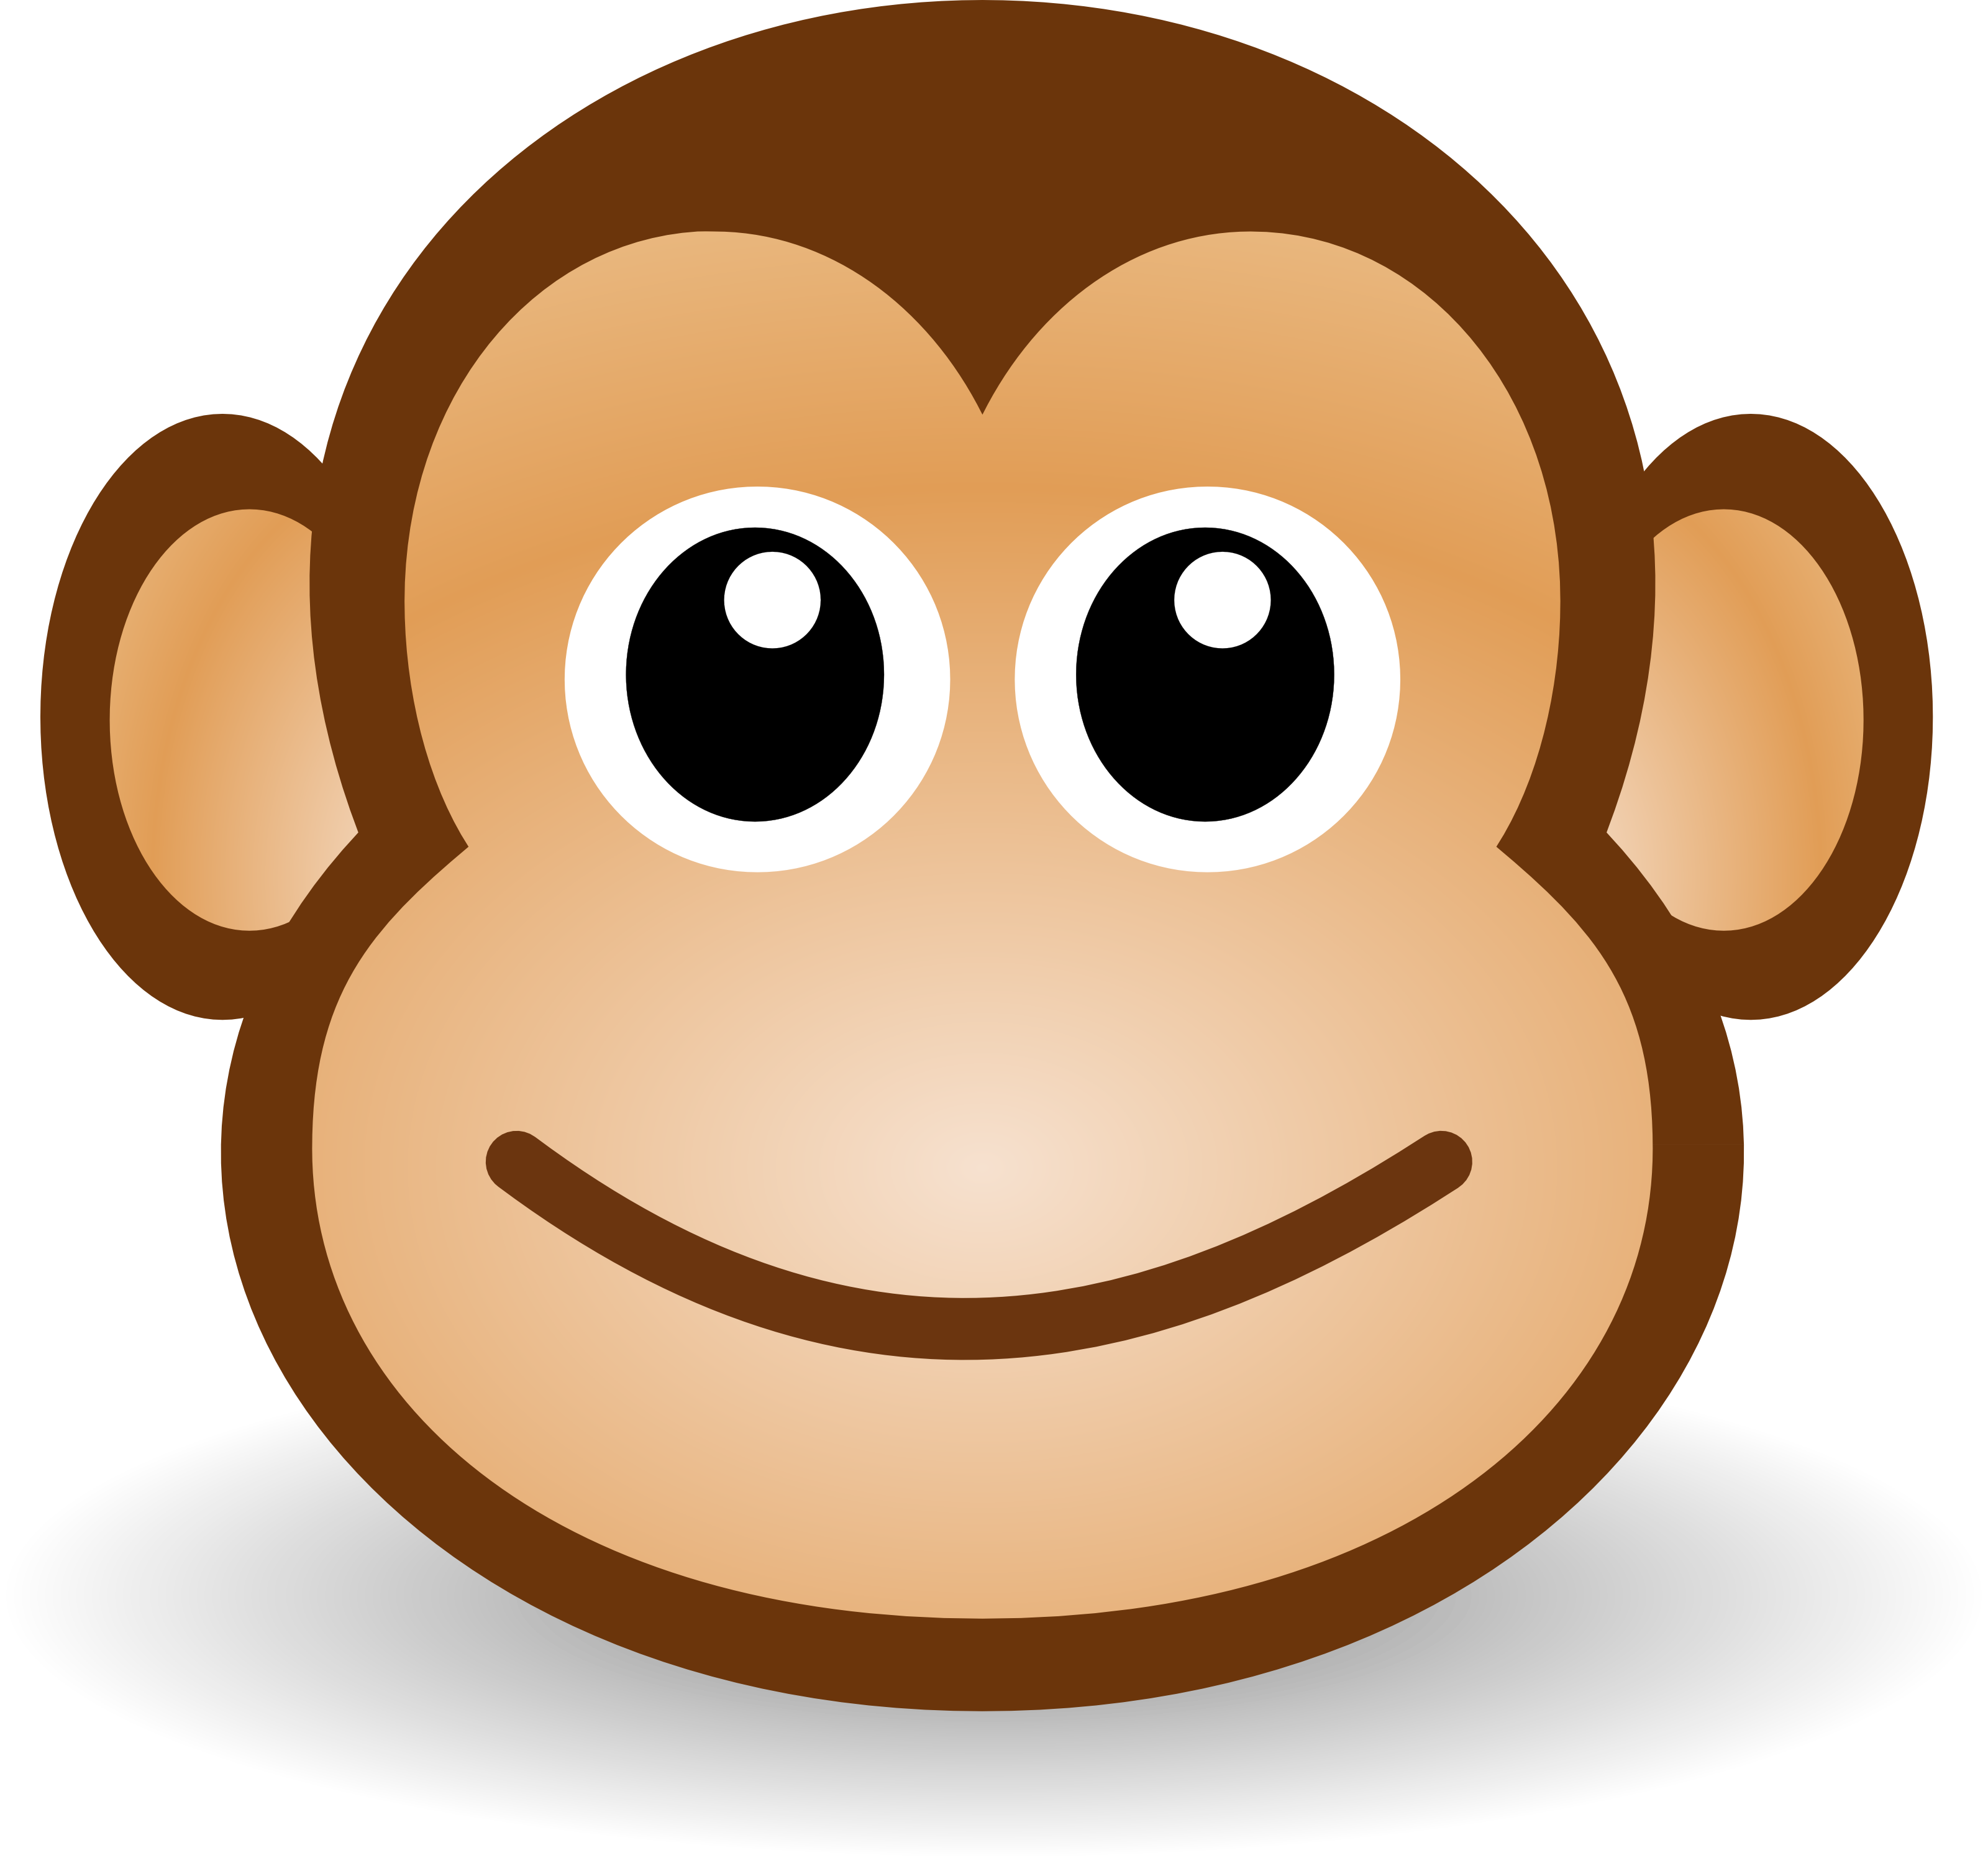 Get Monkey Png Pictures image #26164